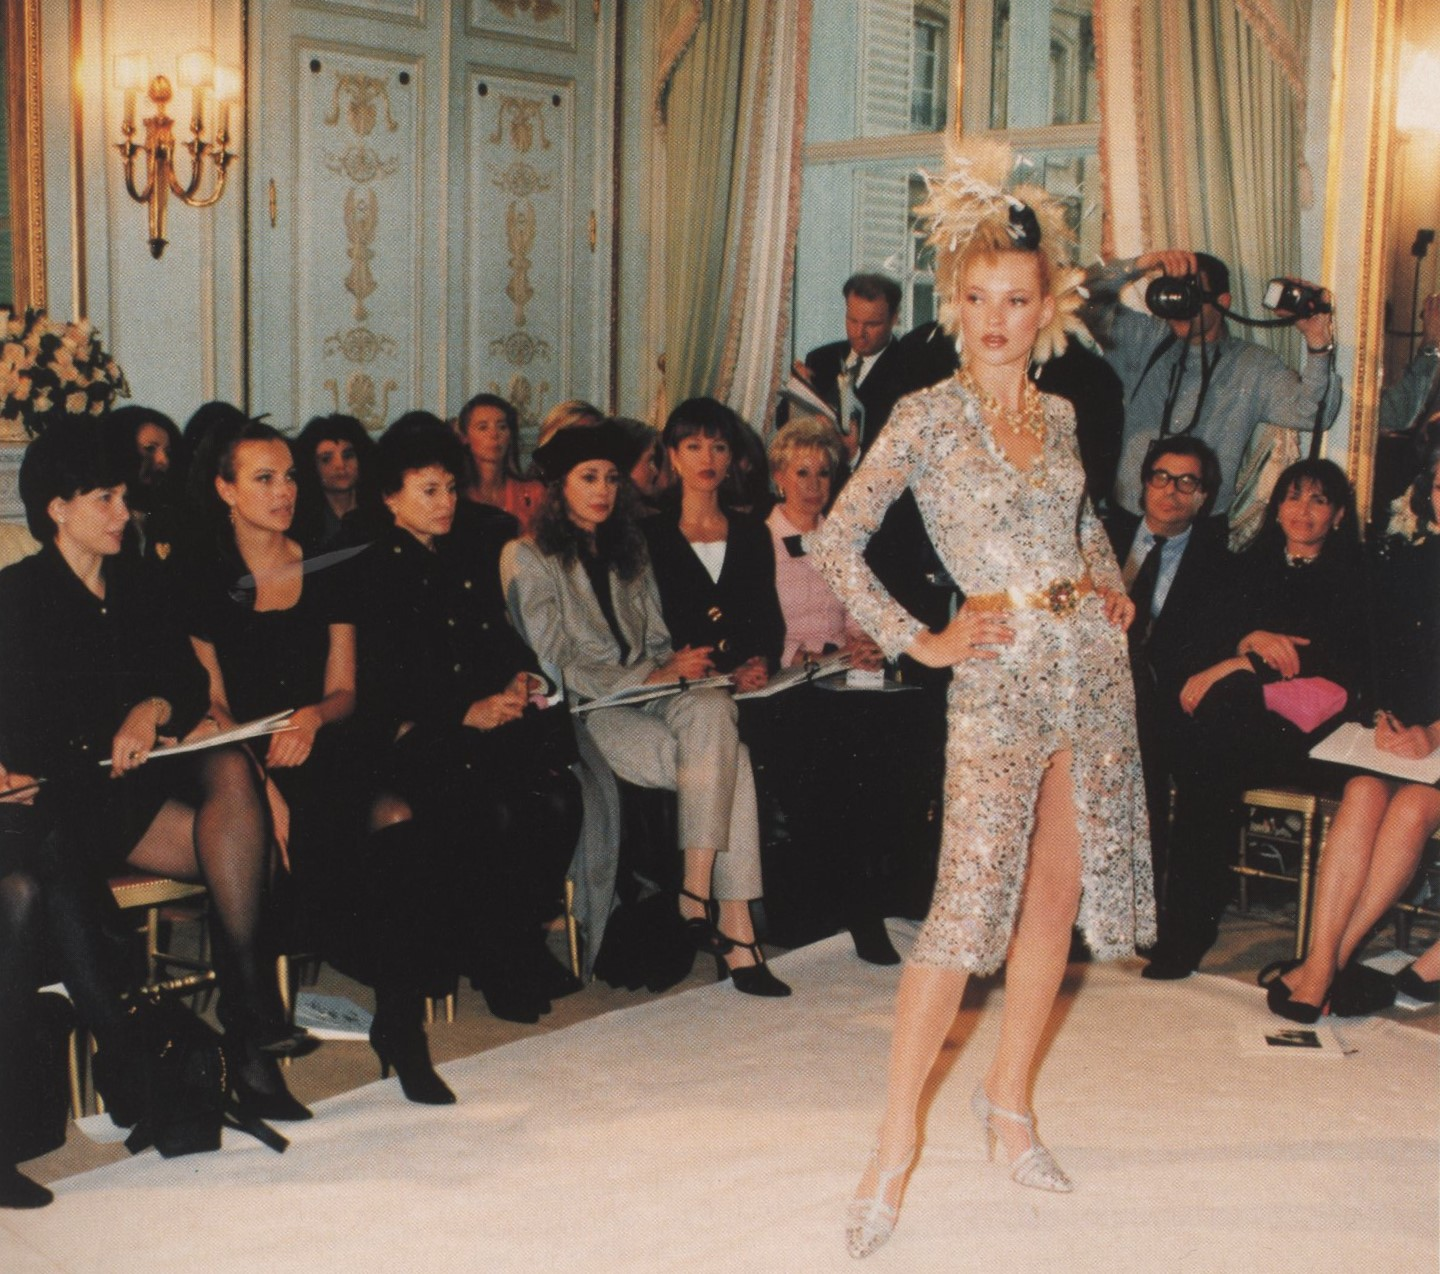 KATE MOSS  CHANEL HAUTE COUTURE RITZ PARIS PHOTOGRAPHY BERTRAND RINDOFF PETROFF VOGUE PARIS N°765 MARCH 1996